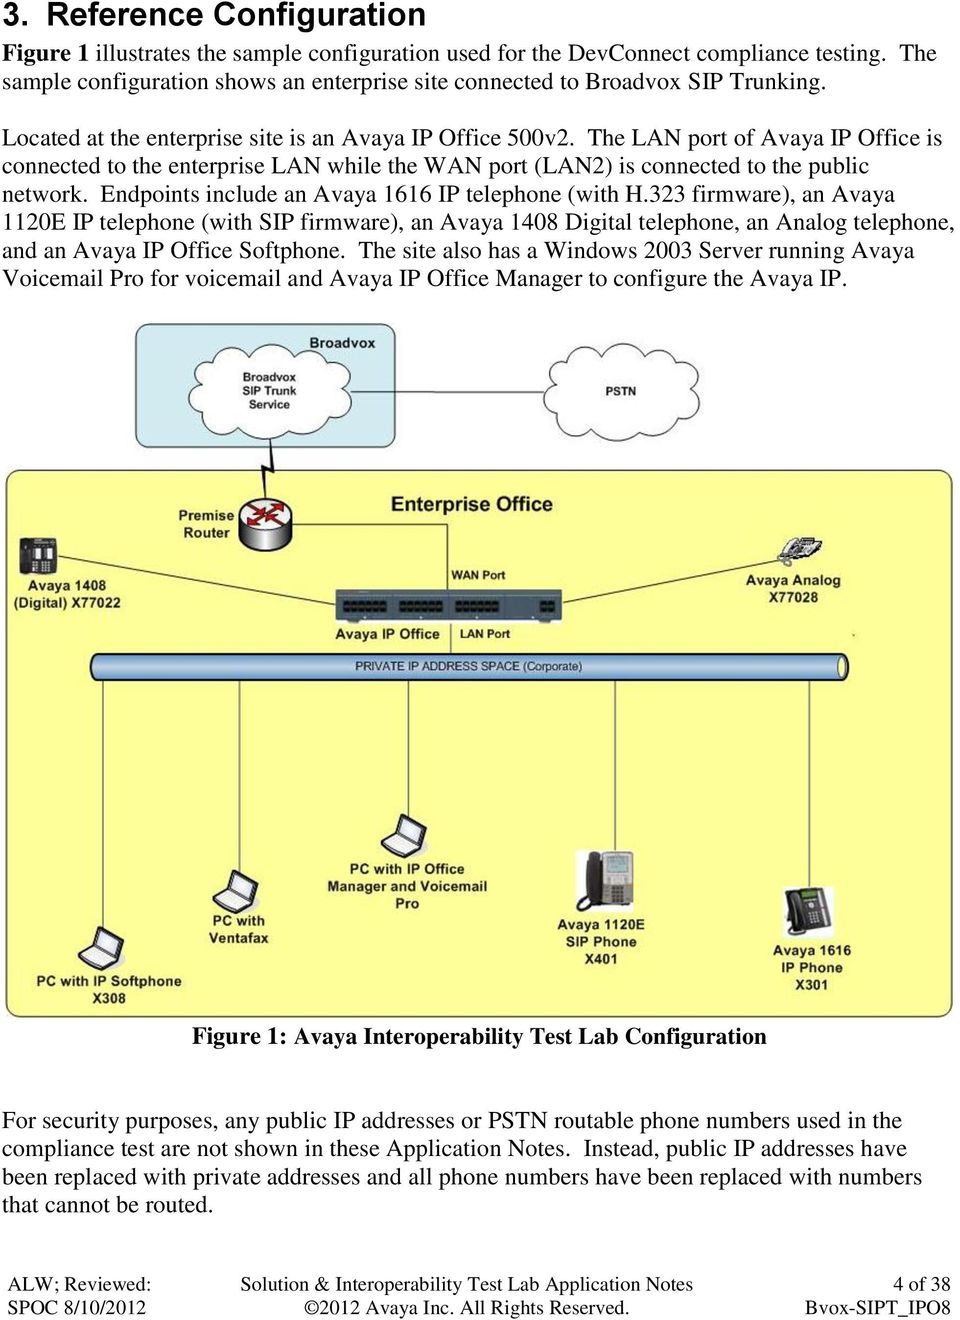 The LAN port of Avaya IP Office is connected to the enterprise LAN while the WAN port (LAN2) is connected to the public network. Endpoints include an Avaya 1616 IP telephone (with H.